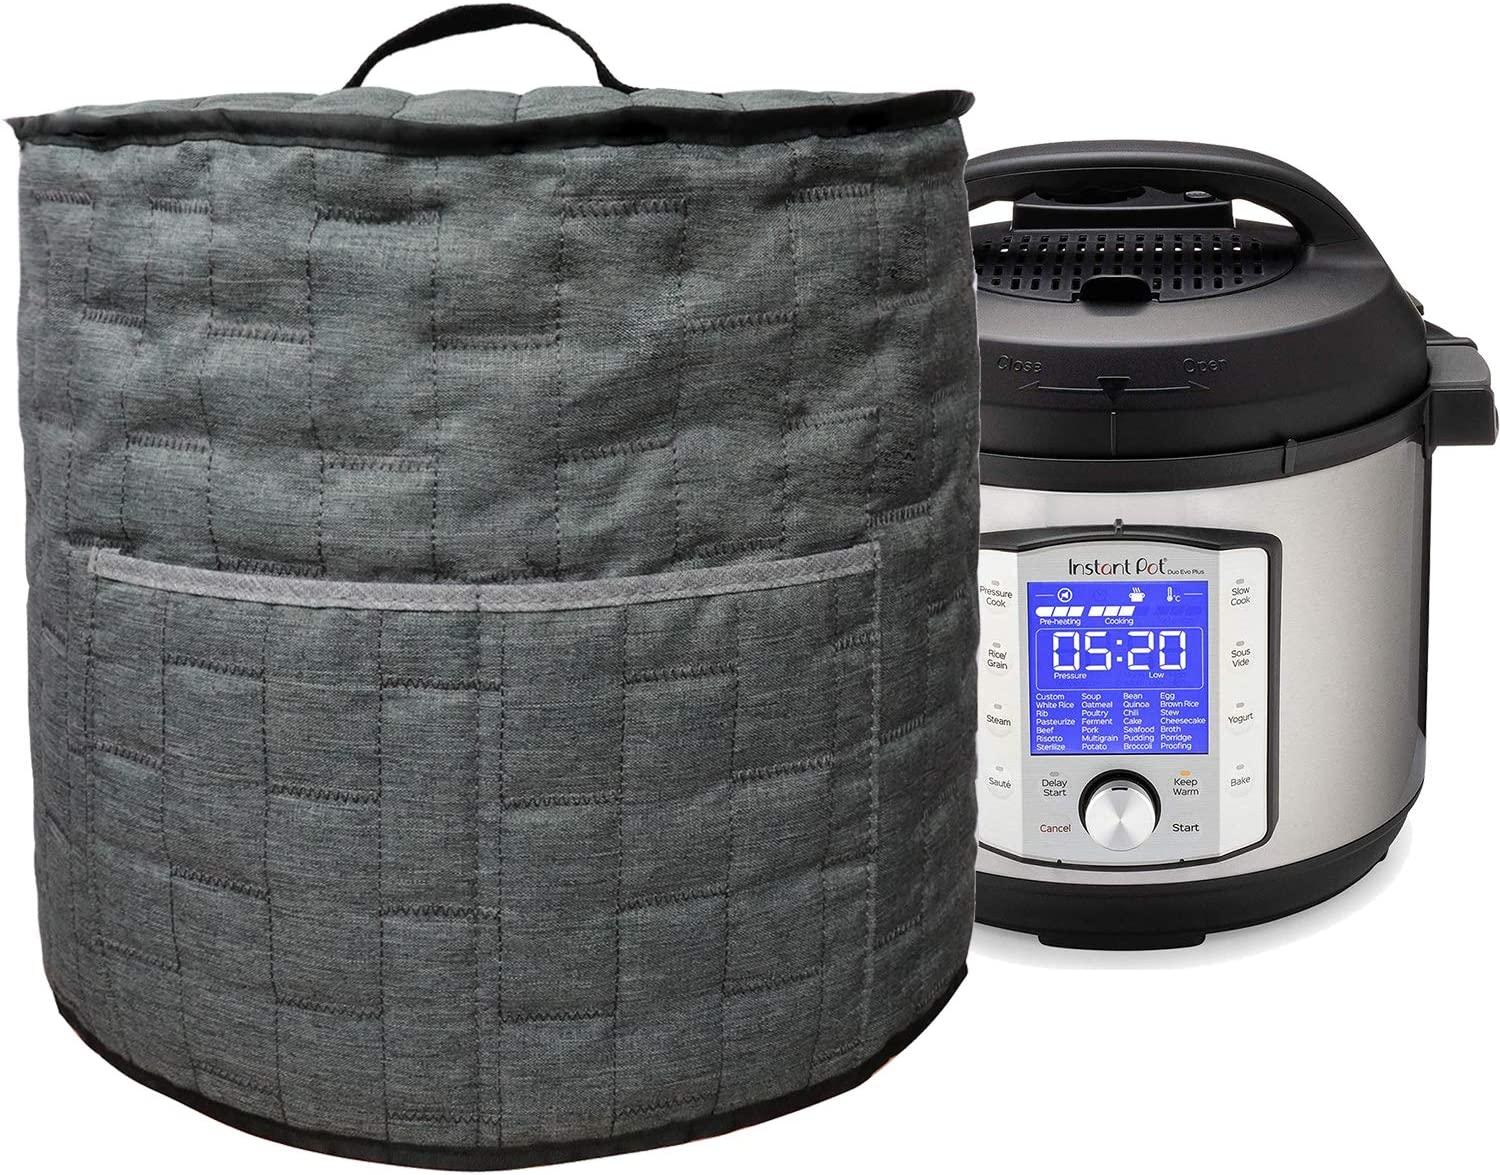 Pressure Cooker Dust Cover with Pocket,Easy Cleaning (For 8 Quart Instant Pot, Grey)